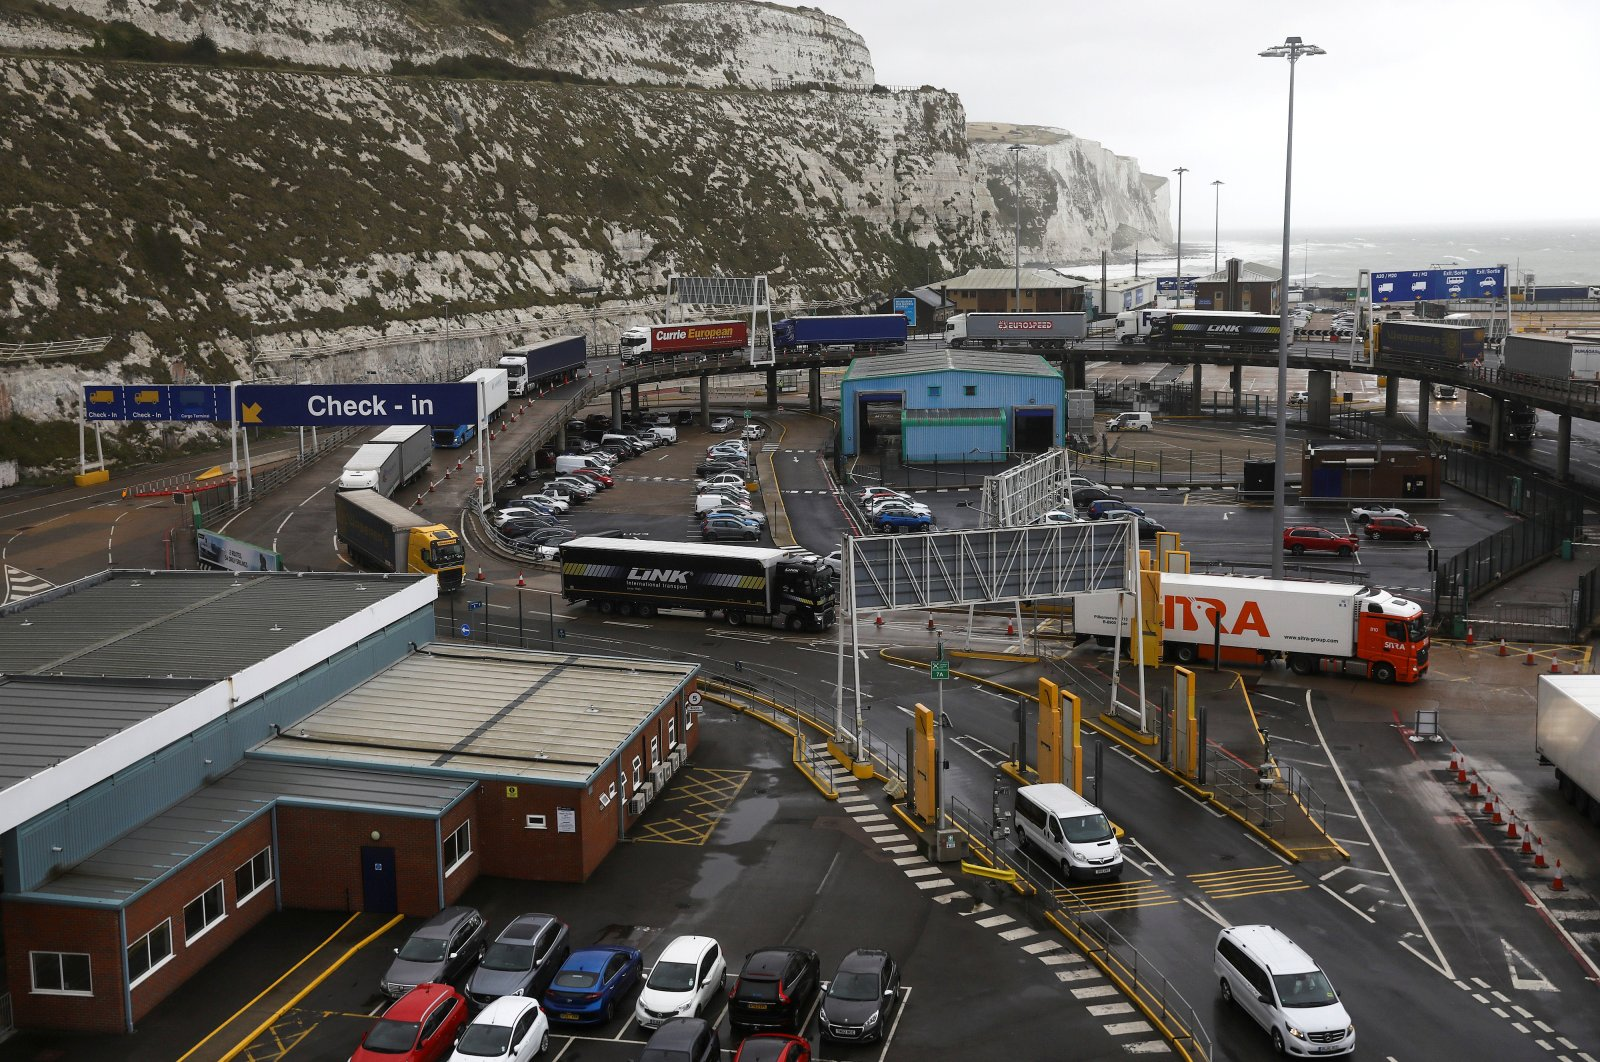 Freight trucks move through the terminal at the Port of Dover, Britain, Oct. 11, 2019. (Reuter Photo)